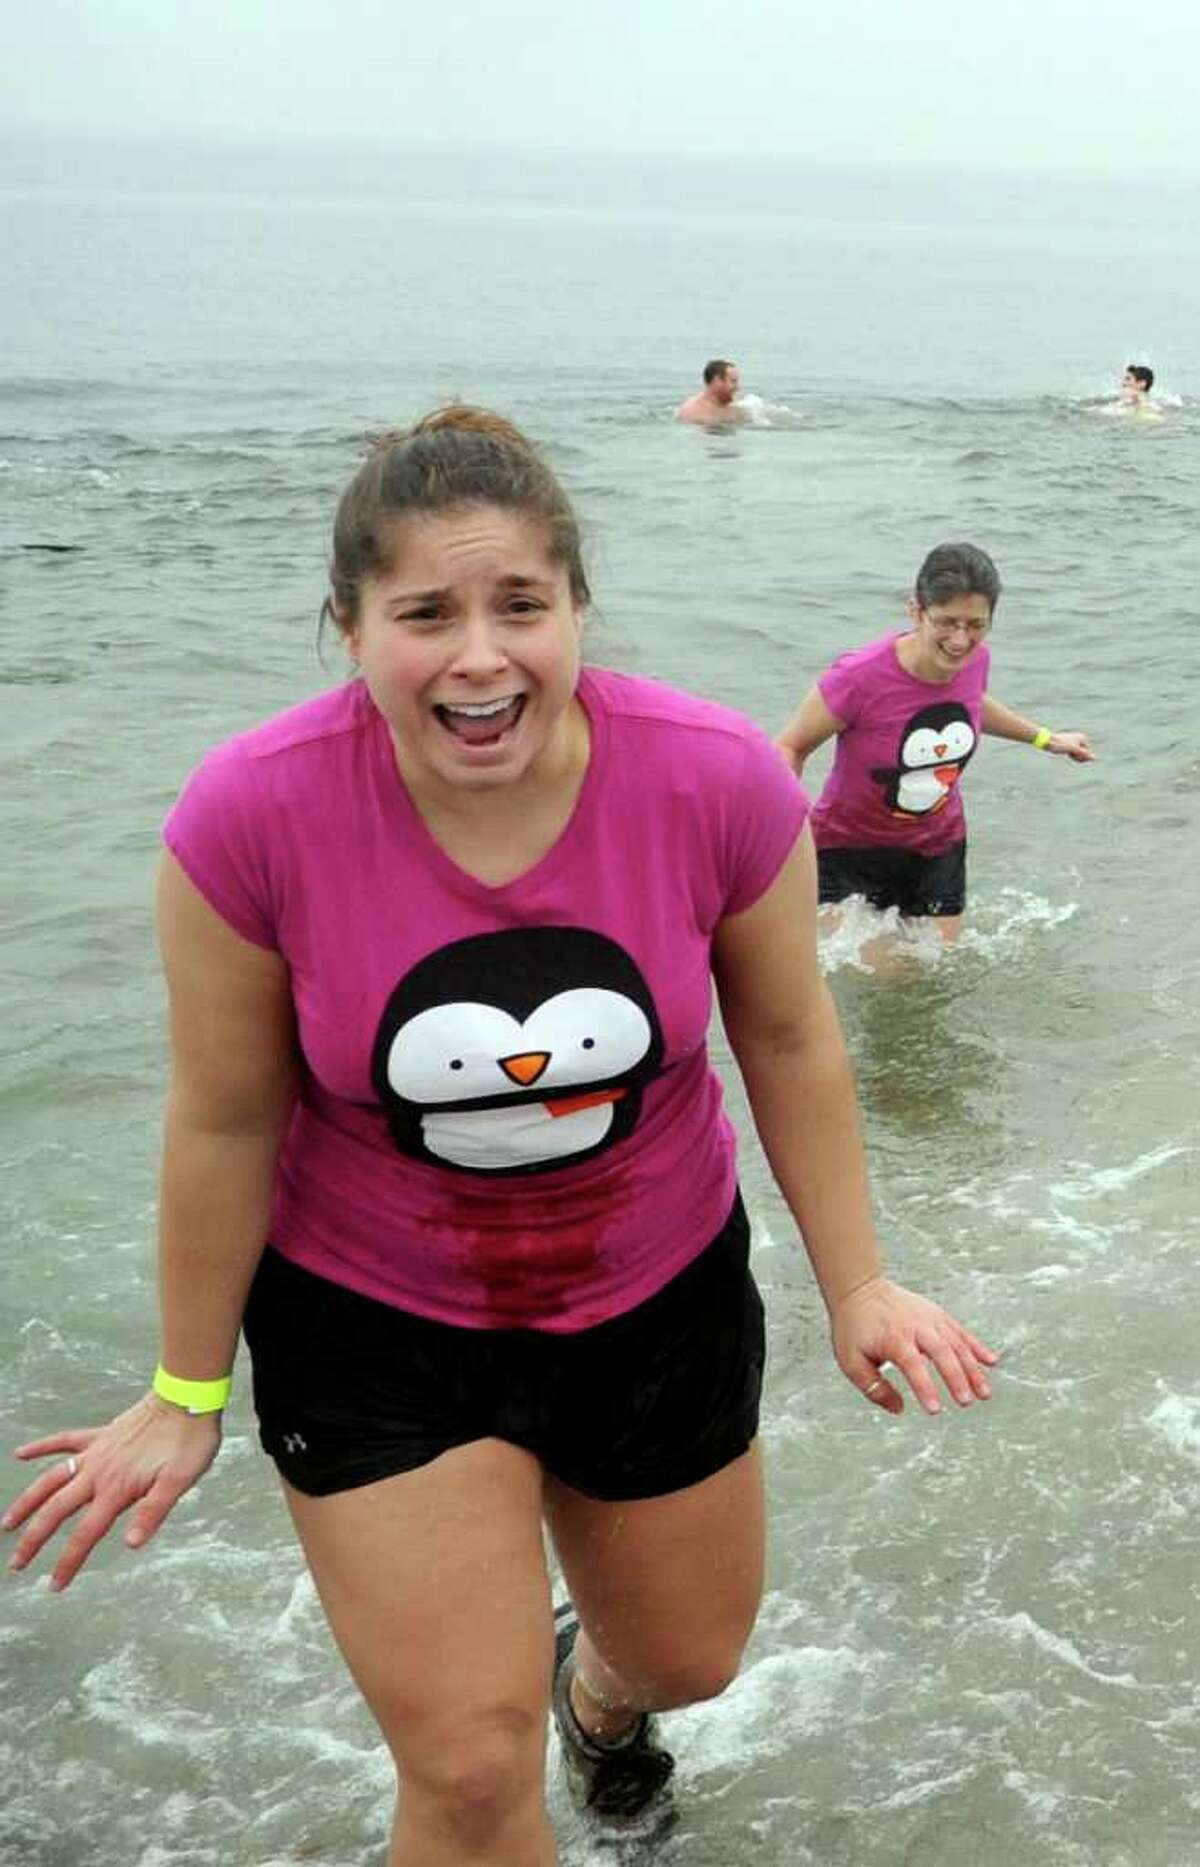 Laura Magnotta, of Fairfield, runs out of the Long Island Sound during the Burroughs Community Center's fourth annual Freezin' for a Reason plunge Saturday, Feb. 5, 2011 at Jennings Beach in Fairfield.